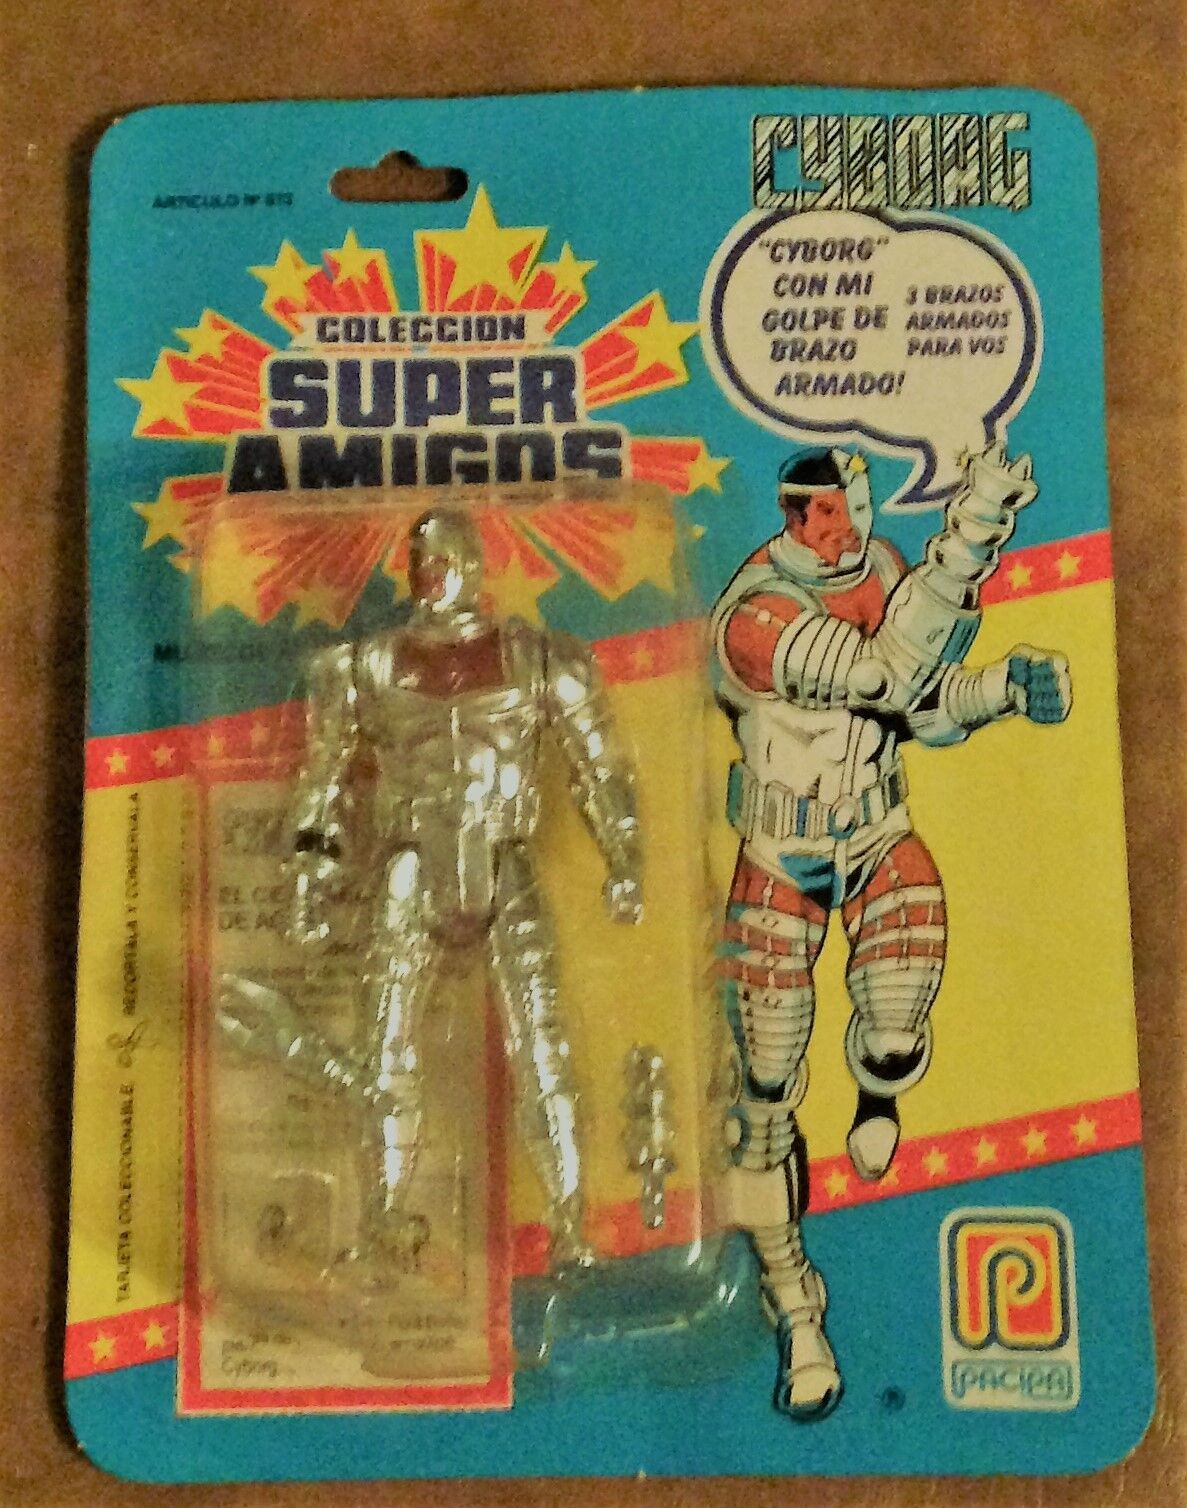 Super Powers Cyborg Pacipa Foreign Variant